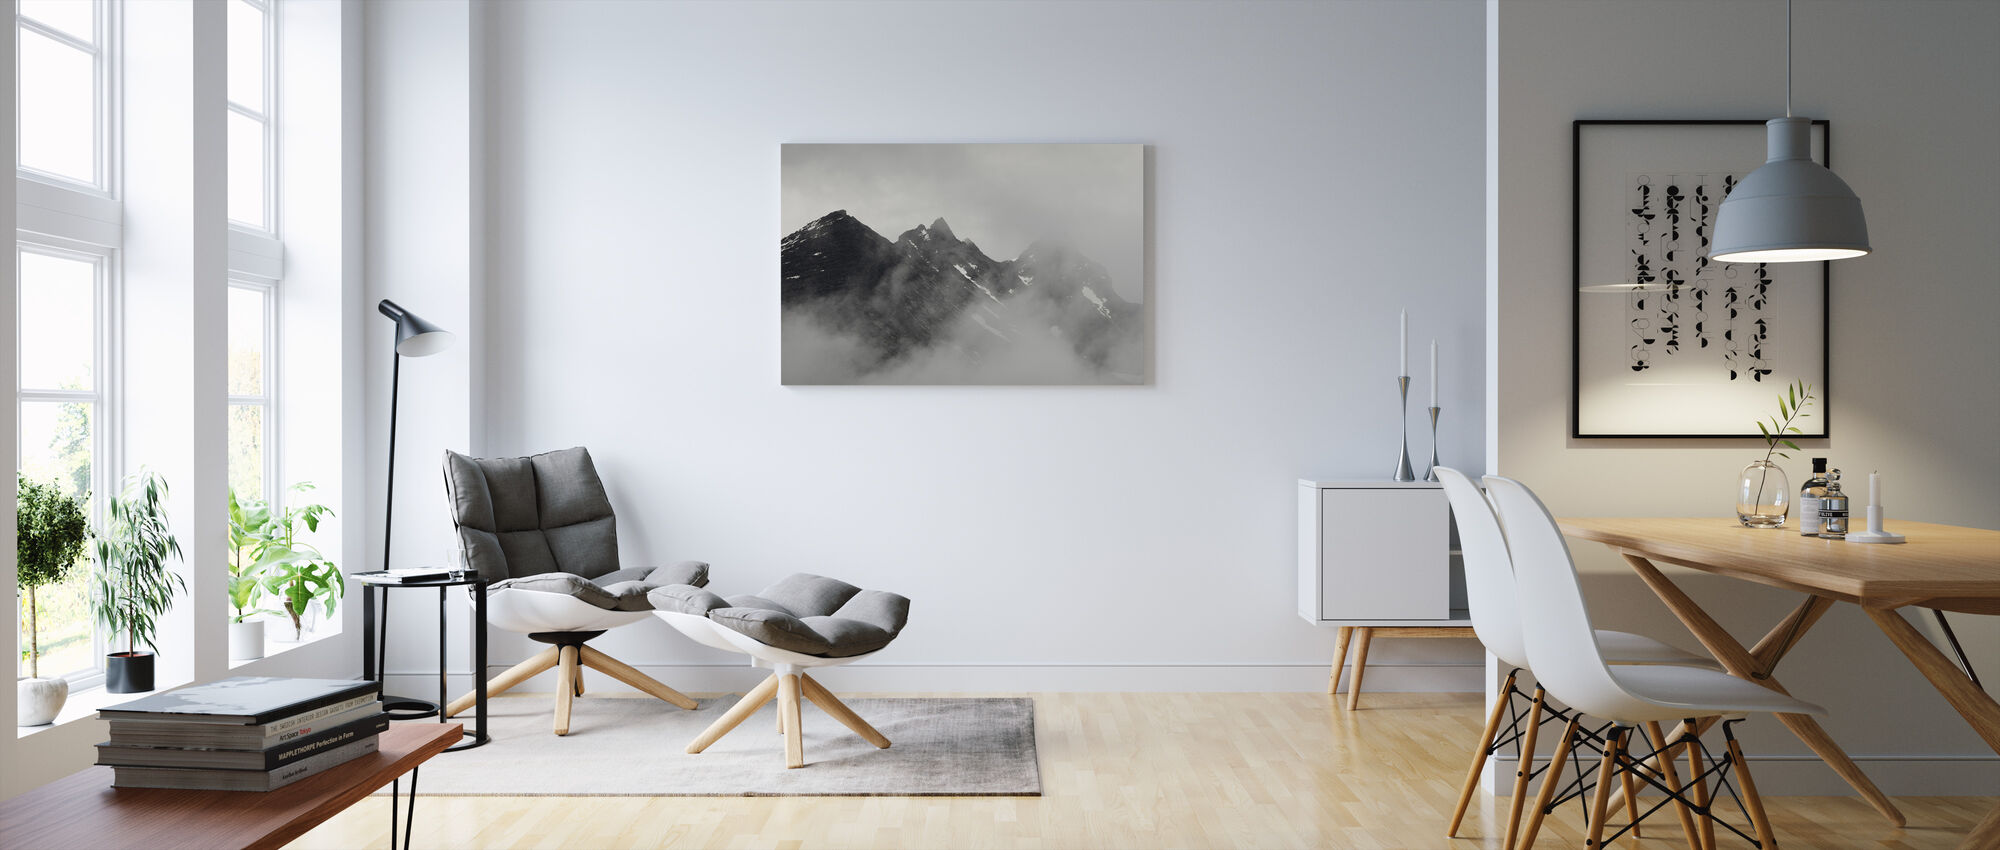 Vettisfossen Mountains, Norway - Canvas print - Living Room